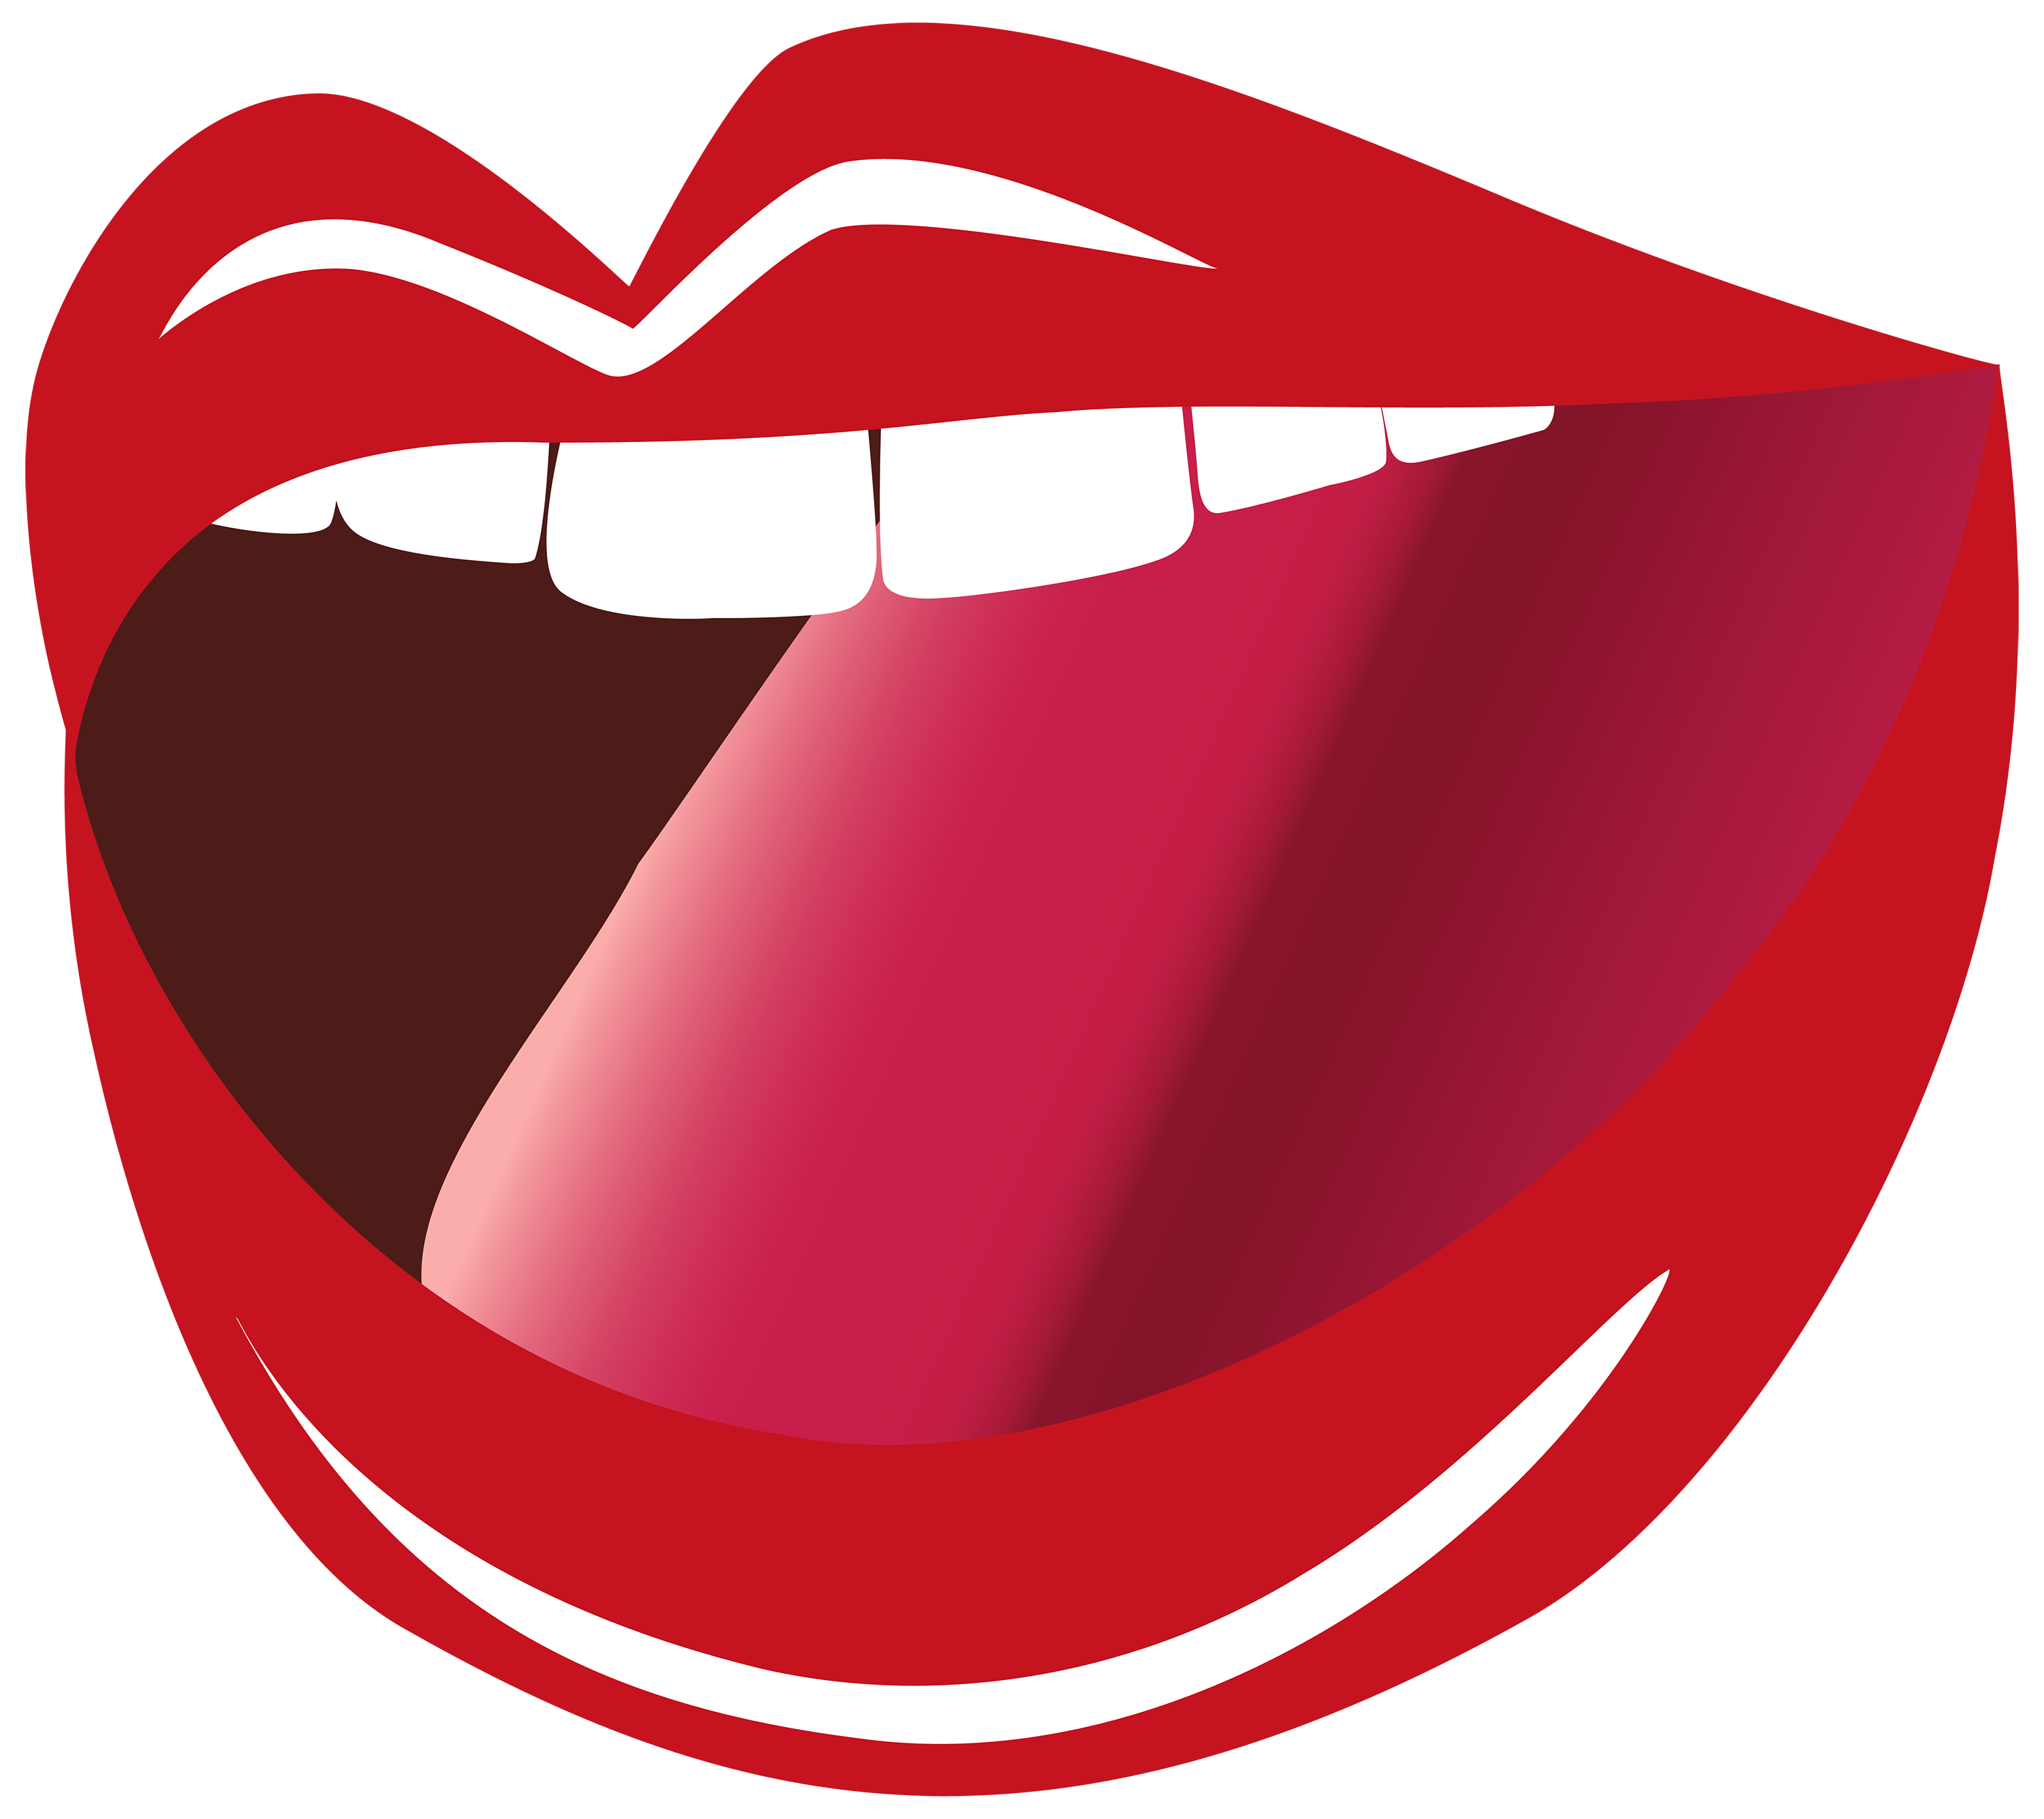 banner royalty free Png image best web. Open mouth clipart black and white